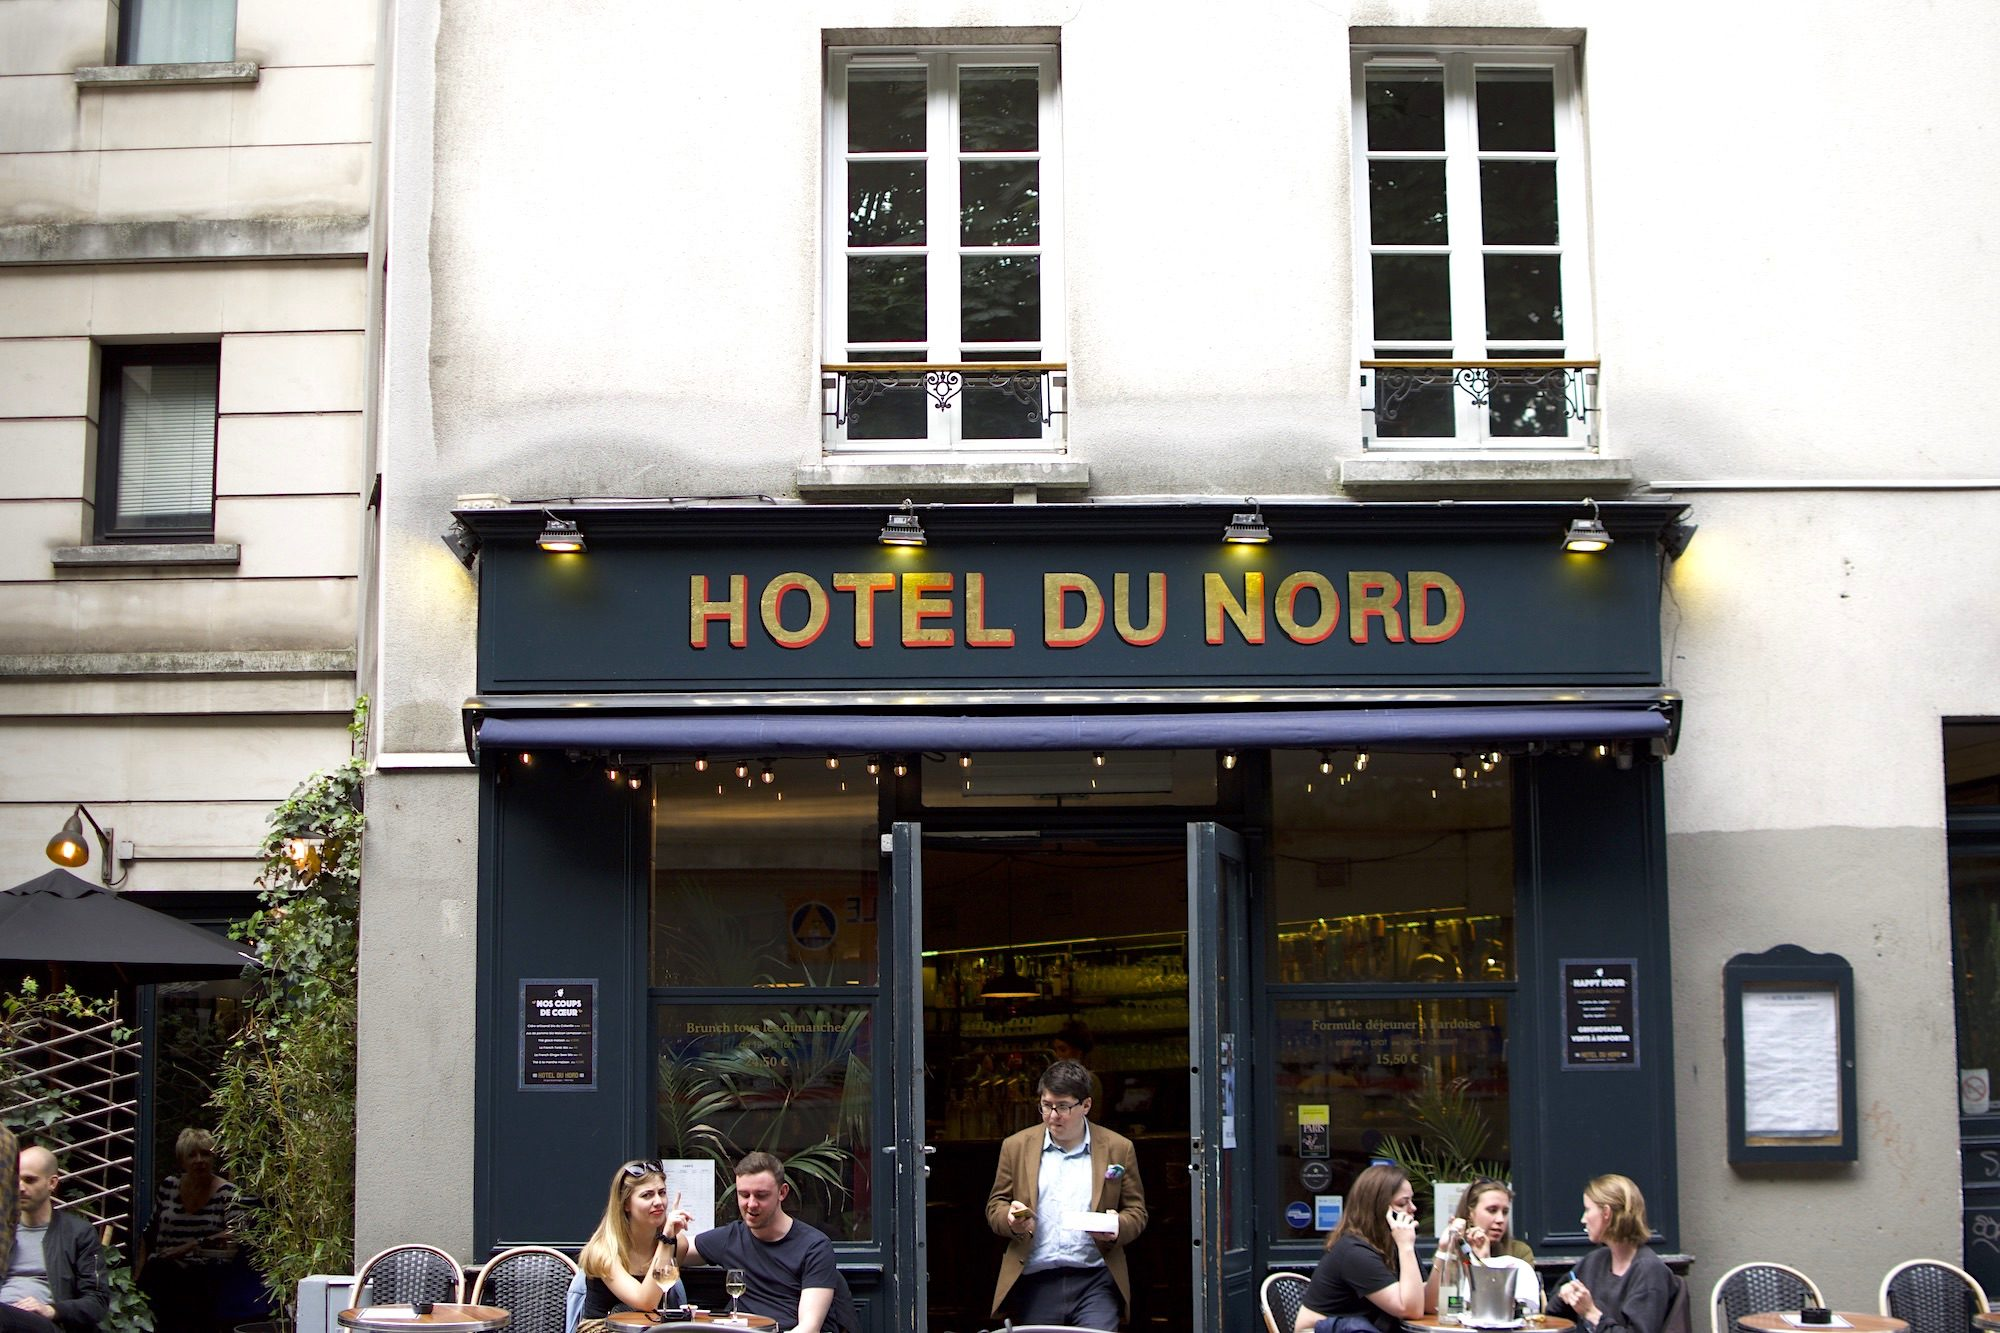 Outside iconic Parisian restaurant the Hotel du Nord on the Canal Saint Martin.